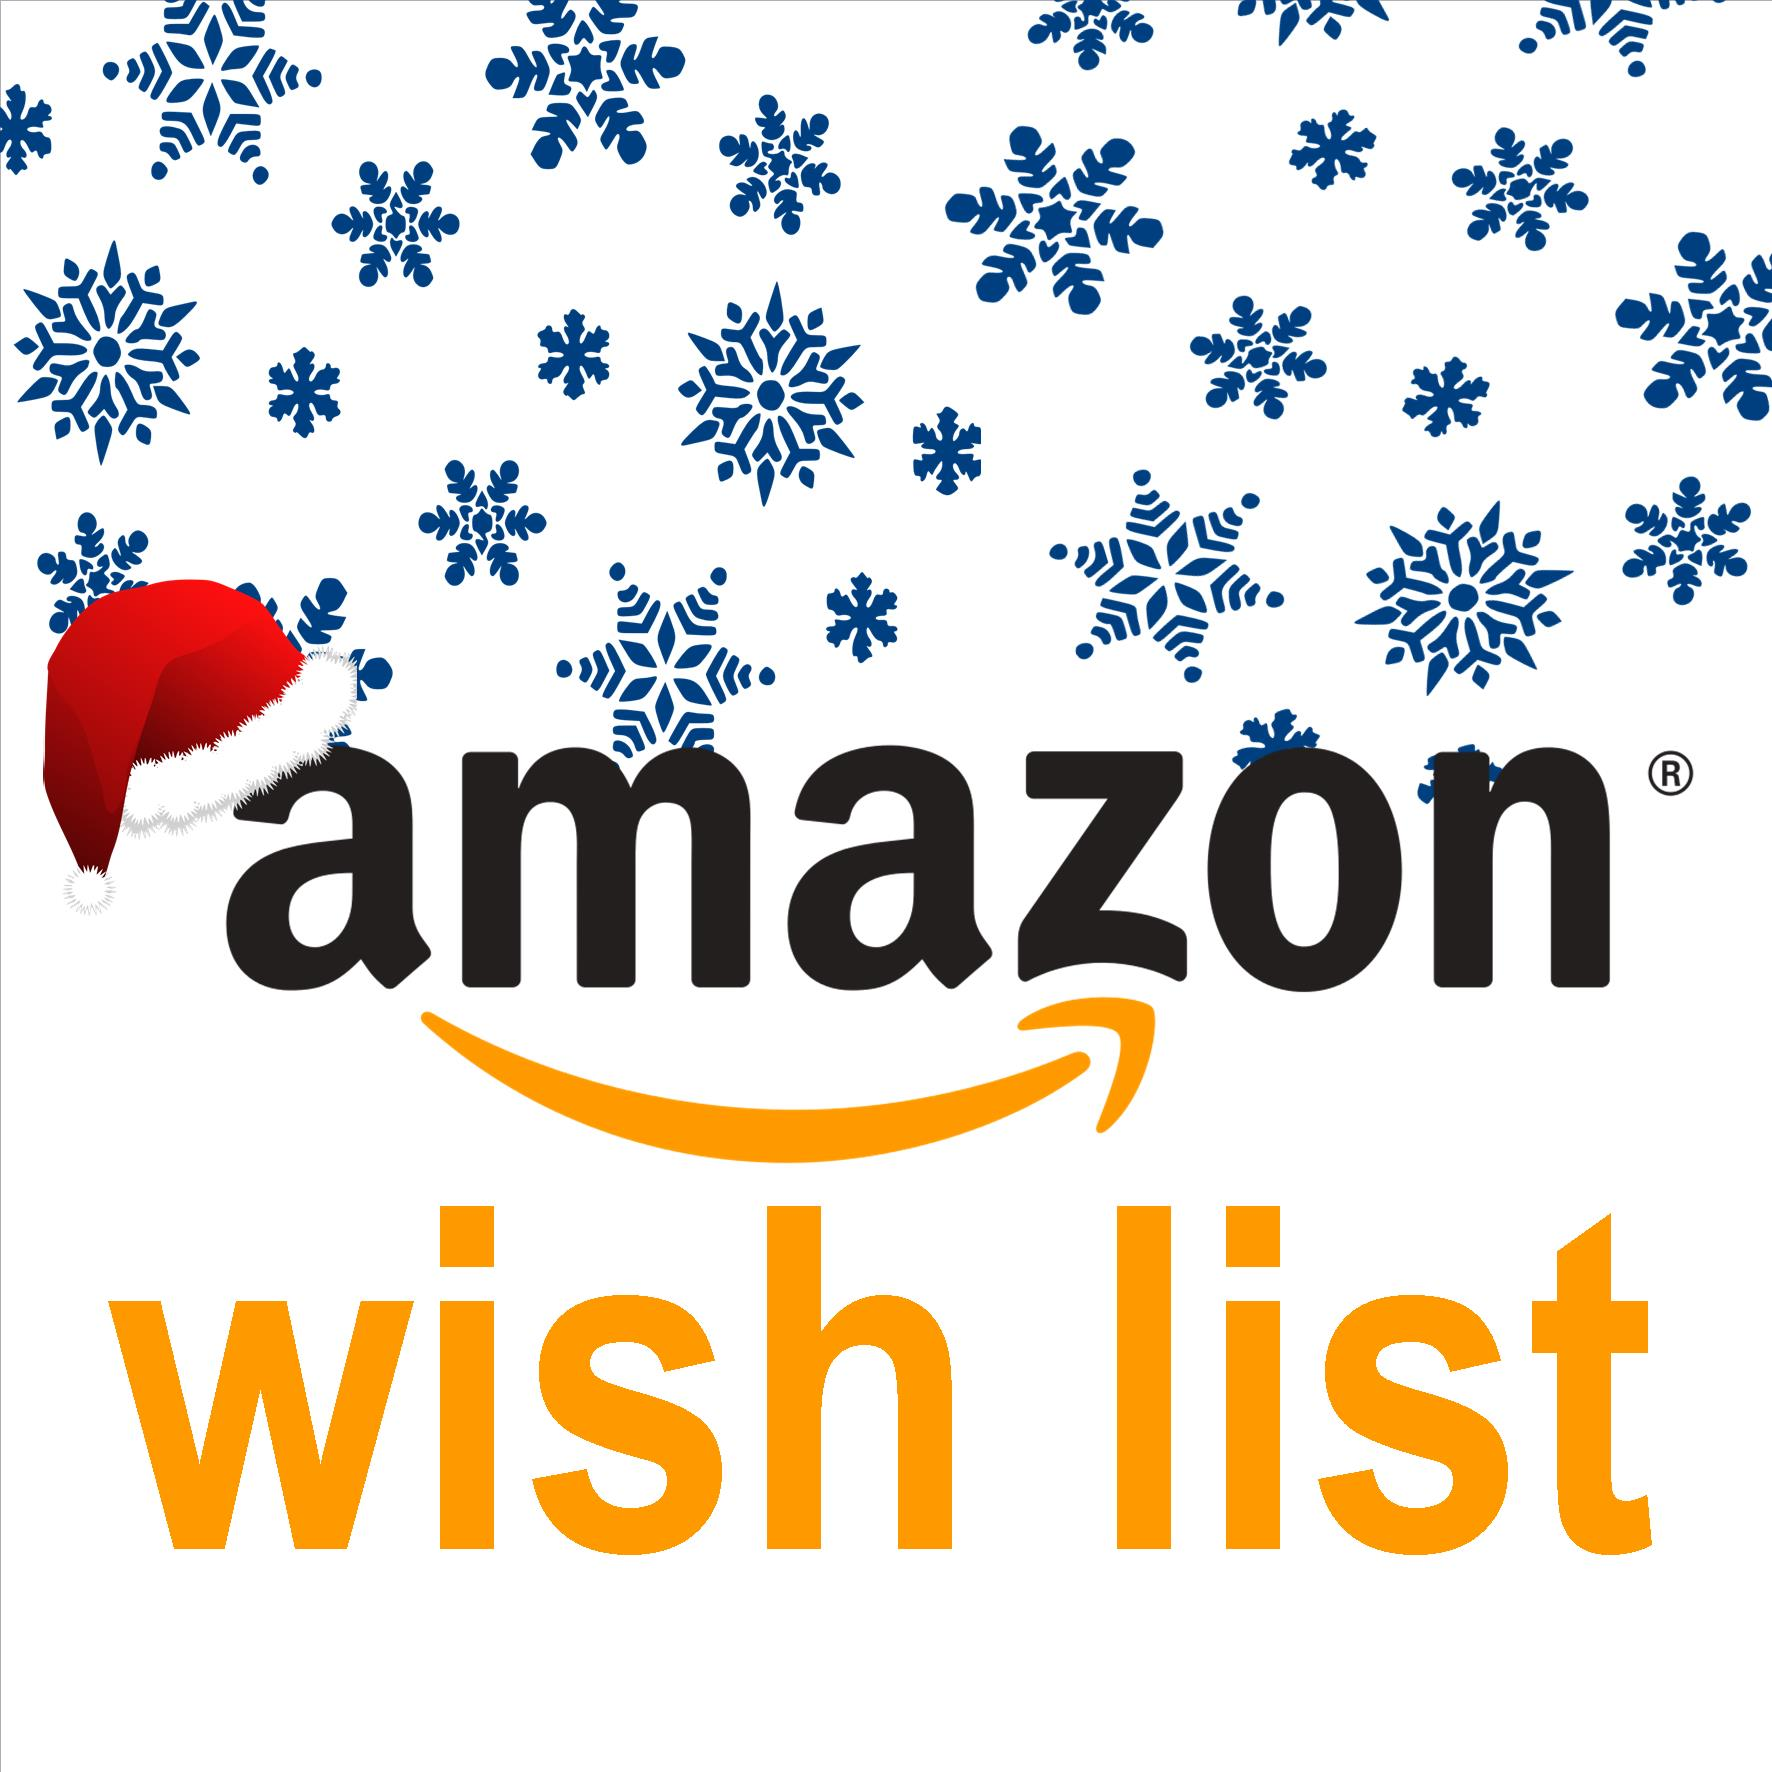 How to Create an Amazon Wishlist: 11 Steps (with Pictures)